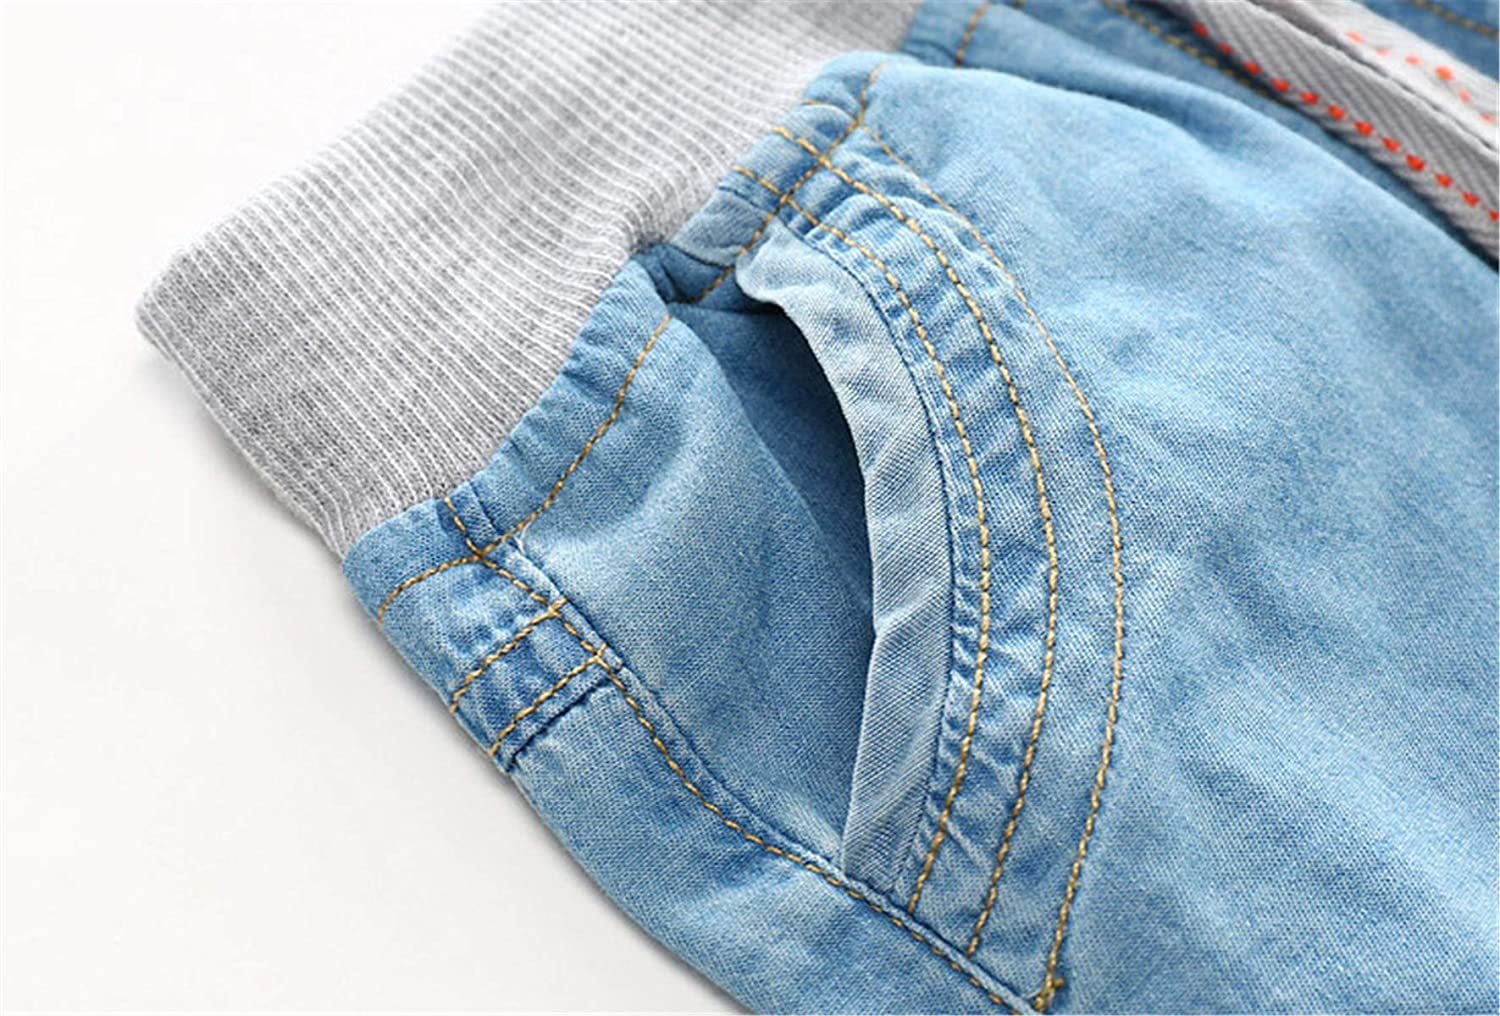 QZH.DUAO EMAOR Unisex Kids Baby Elastic Waist Ripped Holes Denim Pants Jeans /& Shorts 18Months 8Years